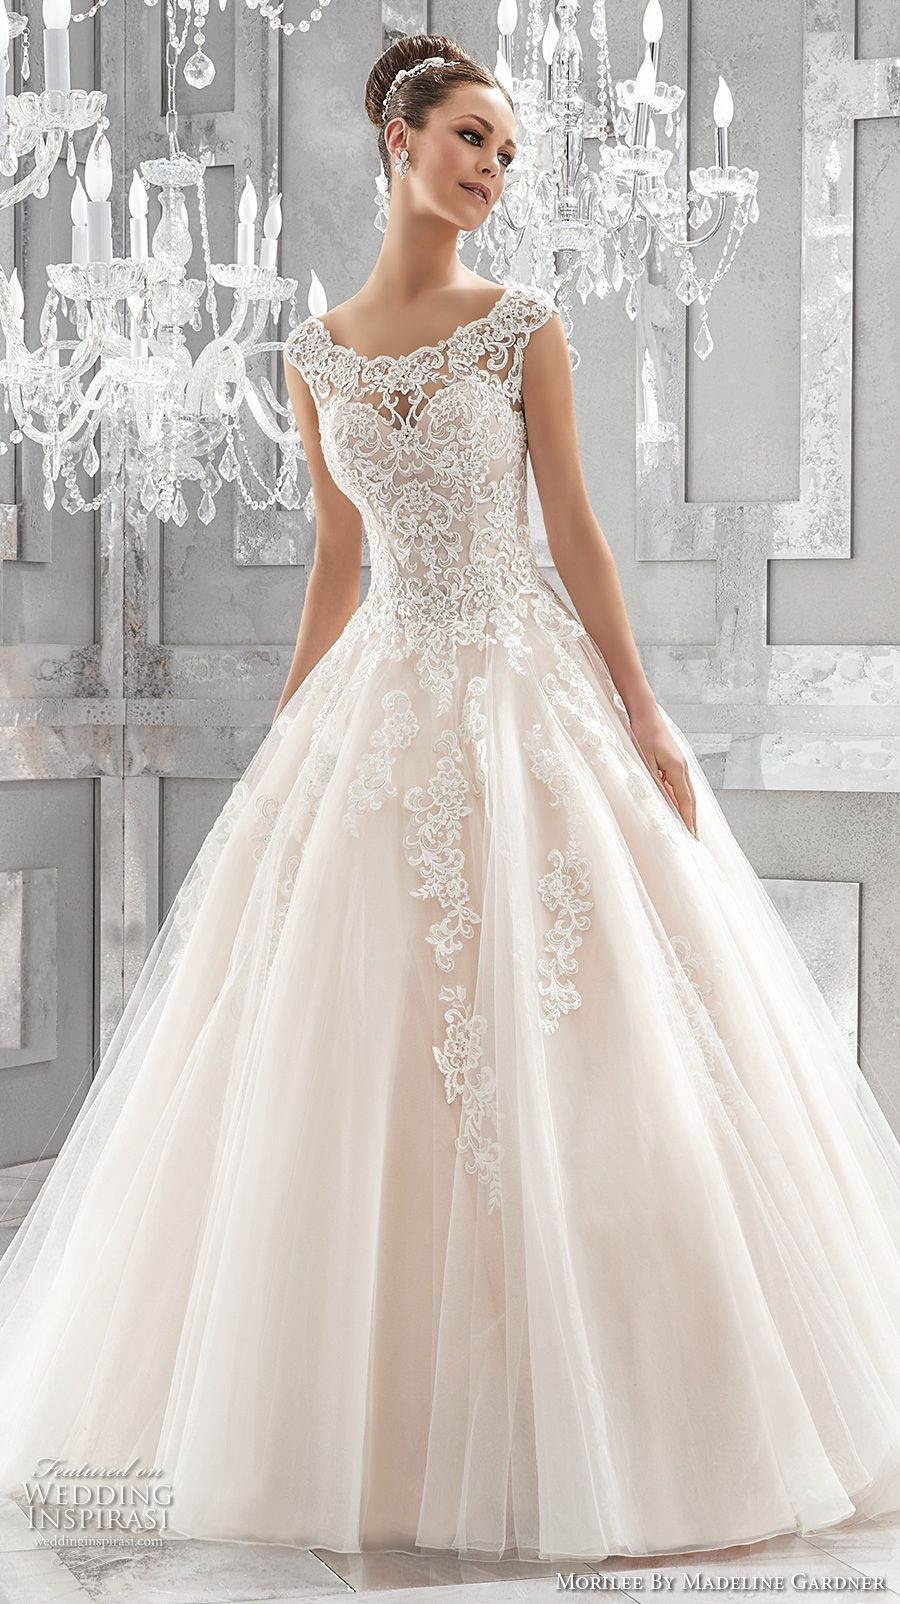 Mori lee madeline gardner wedding dress  Morilee by Madeline Gardner Fall  Blu Bridal Collection  Chapel